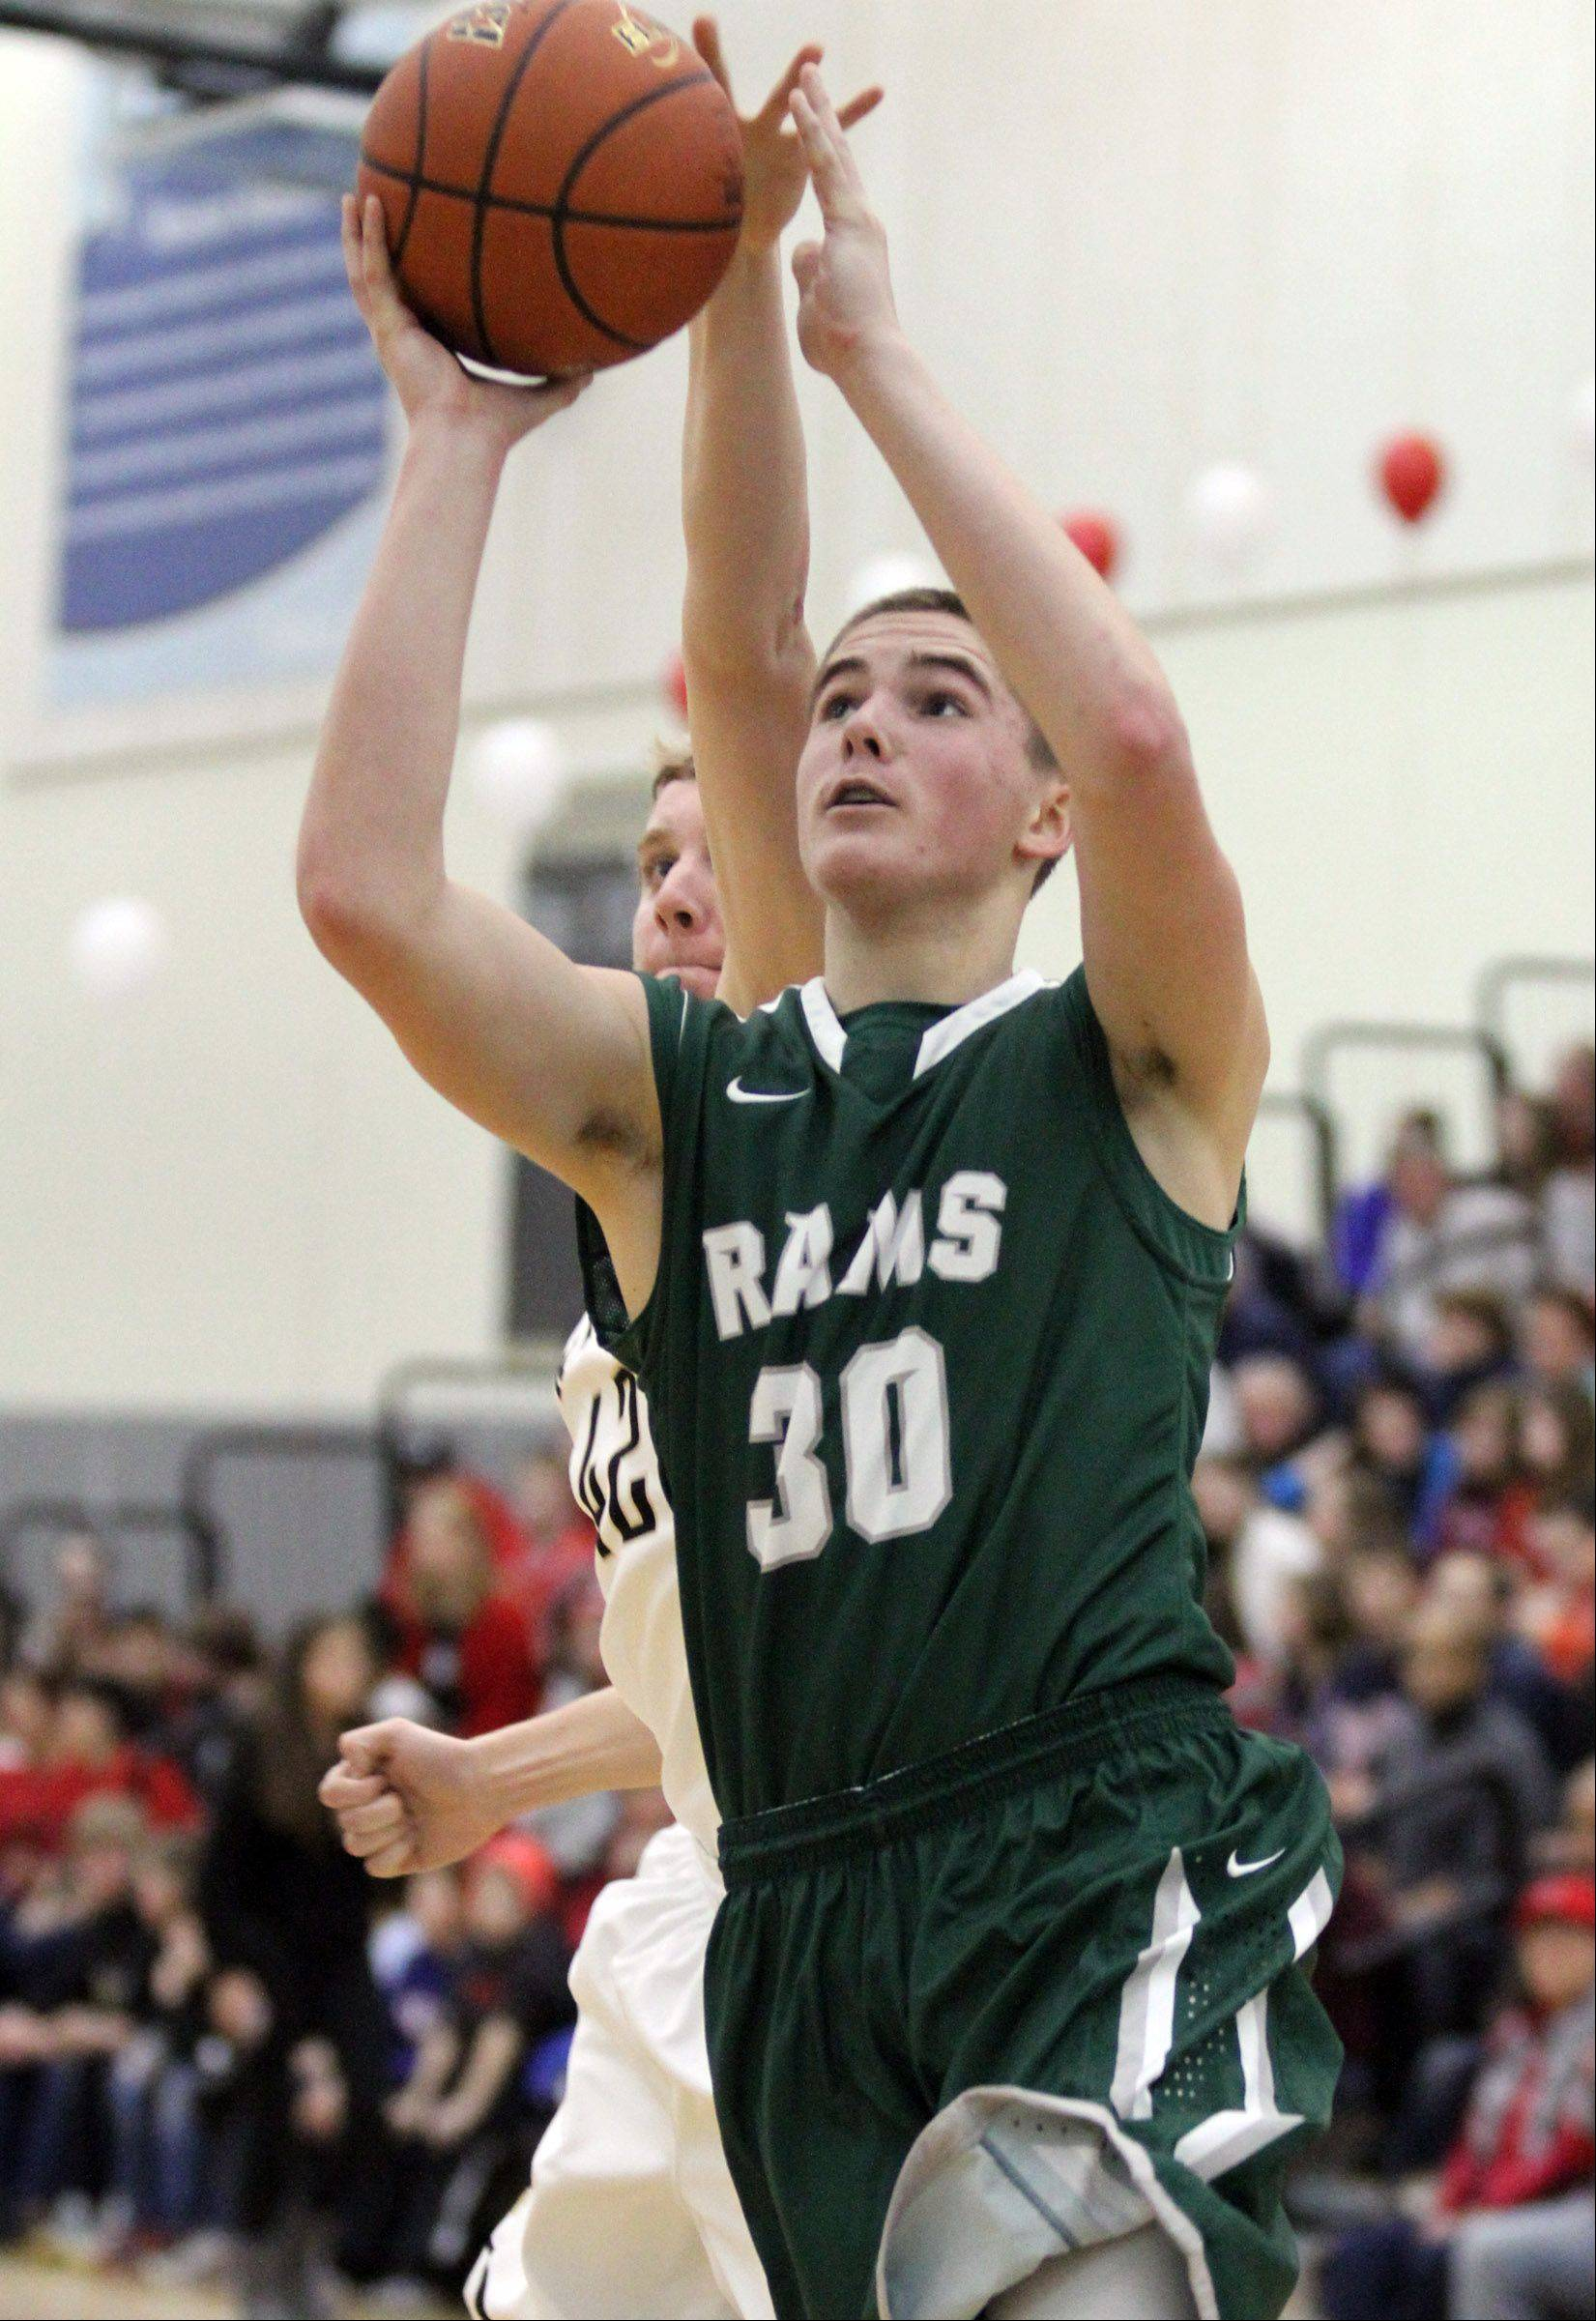 Grayslake Central forward Alex Lennartz breaks away for a shot.